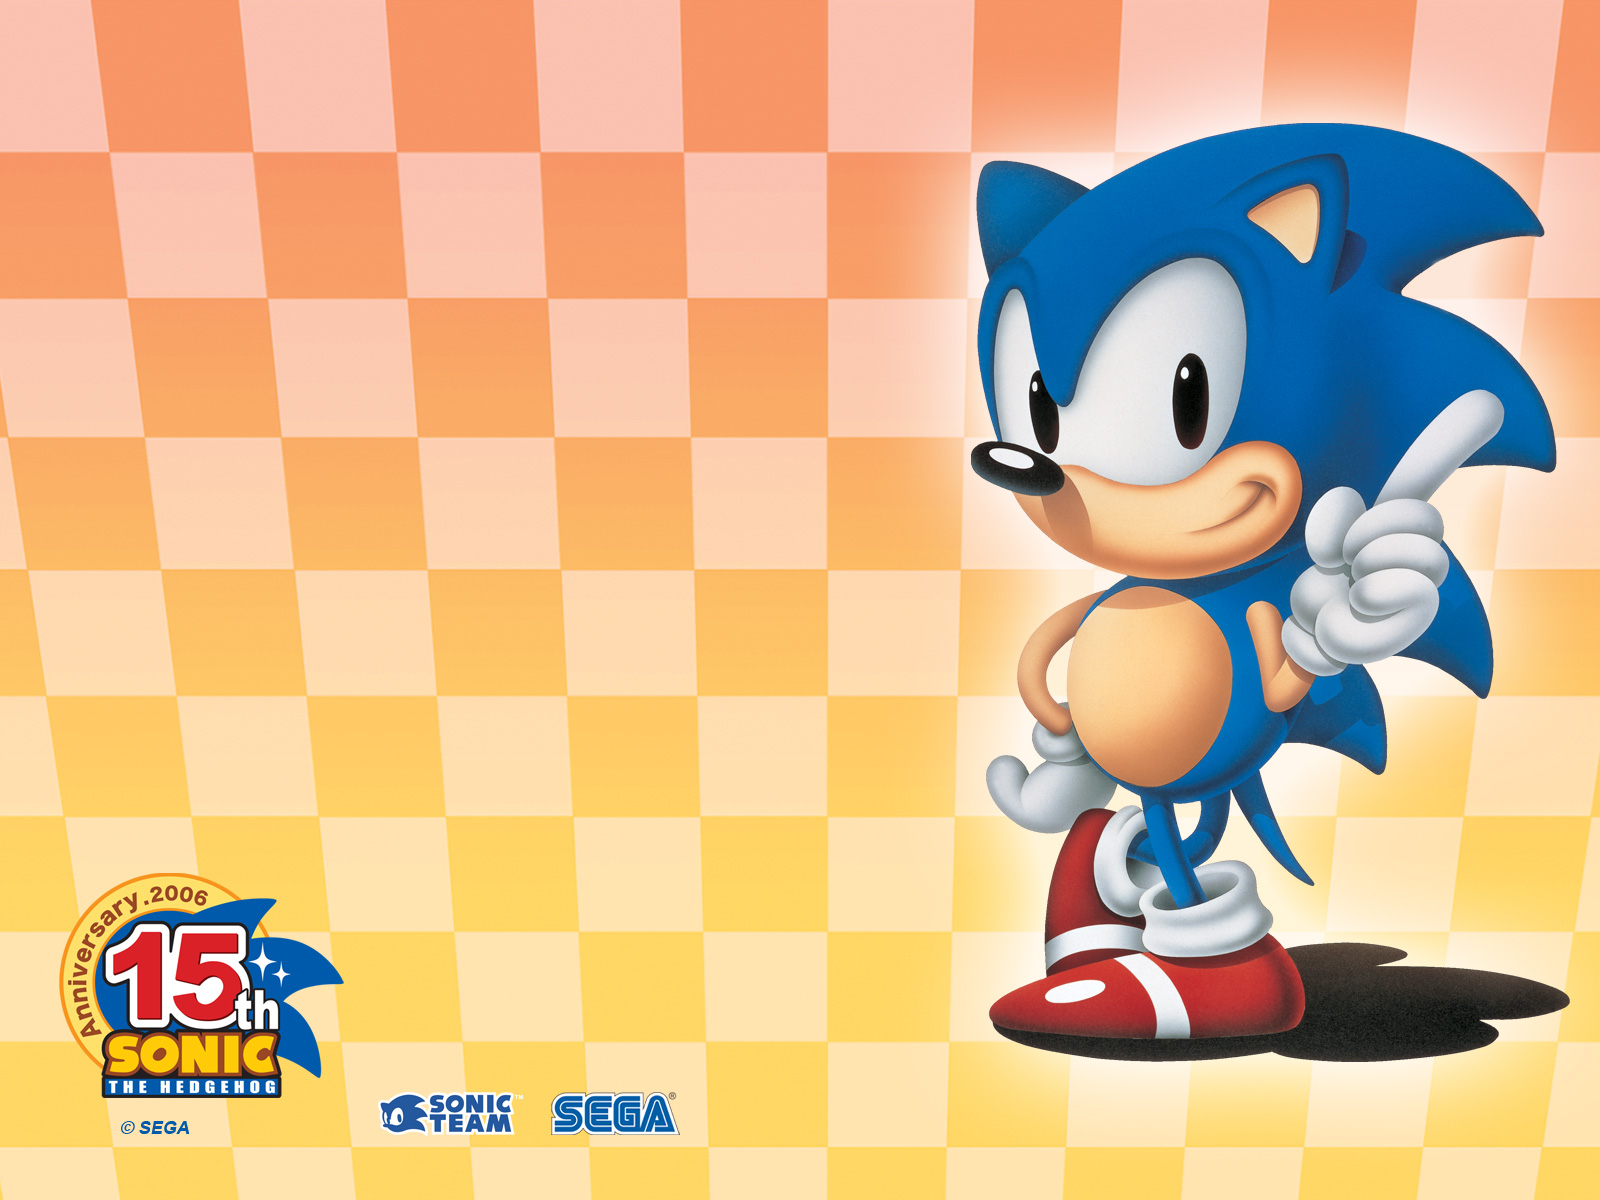 Sonic The Hedgehog Wallpaper 1600x1200 67870